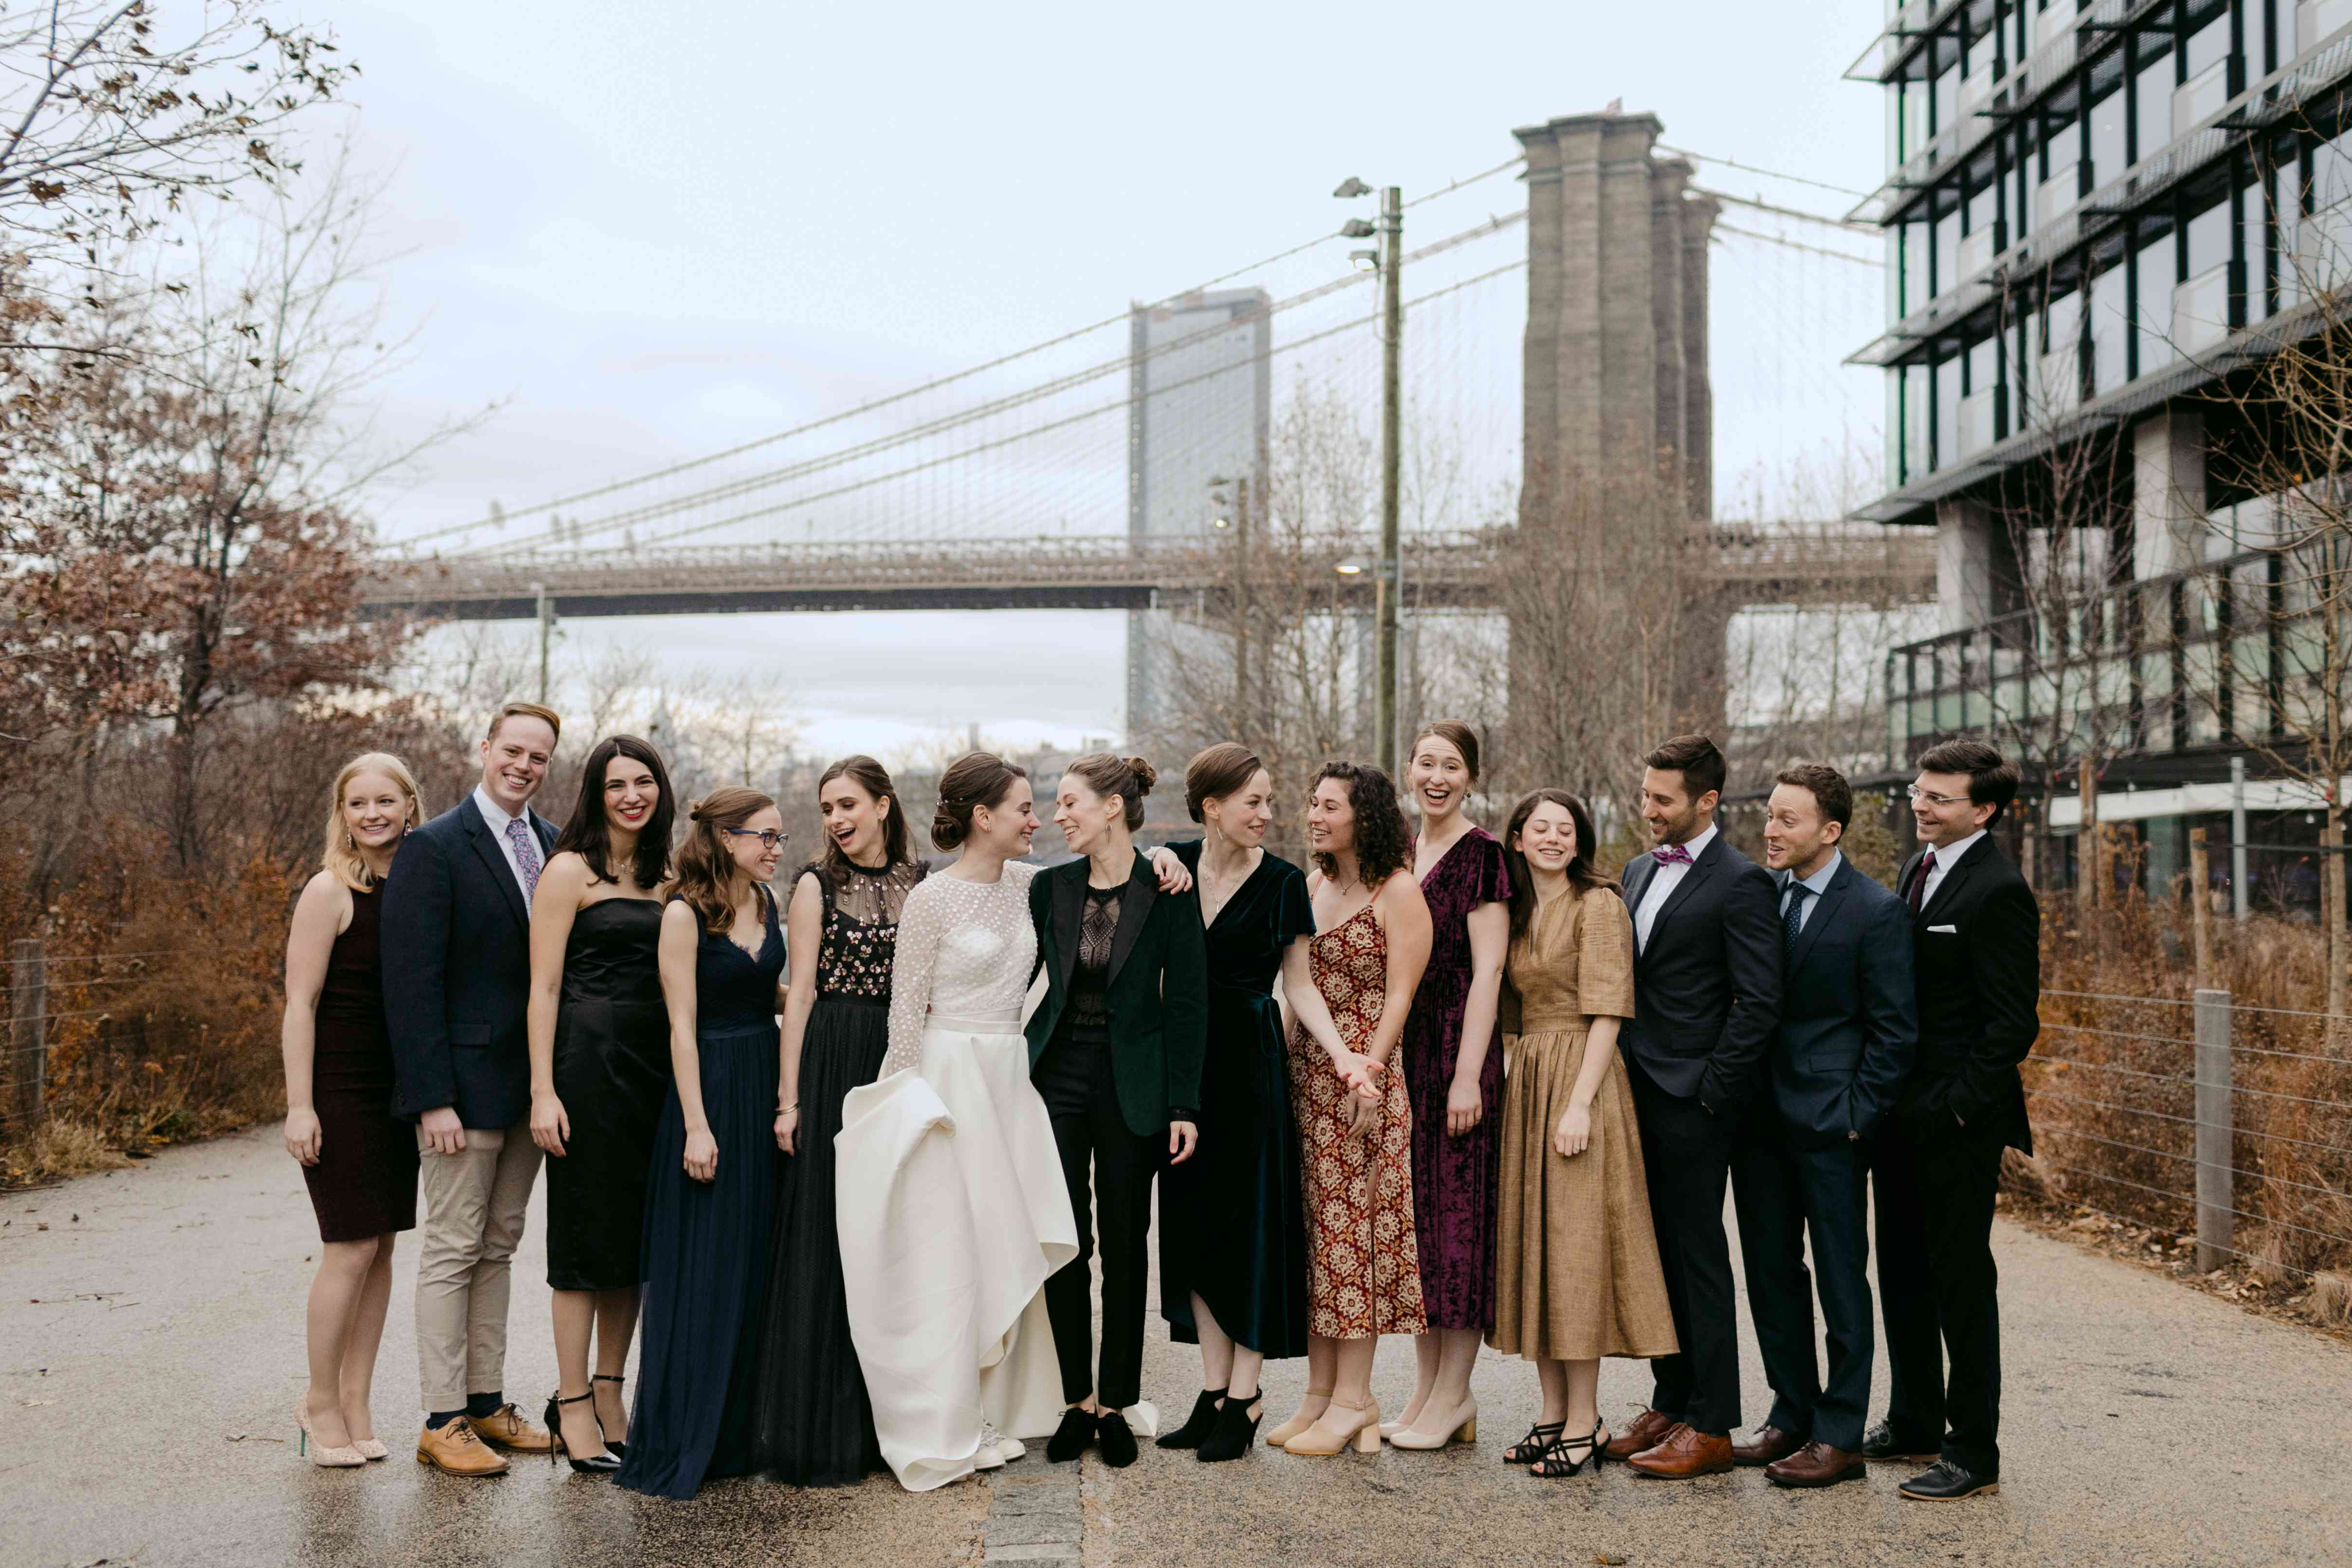 The brides and their wedding party